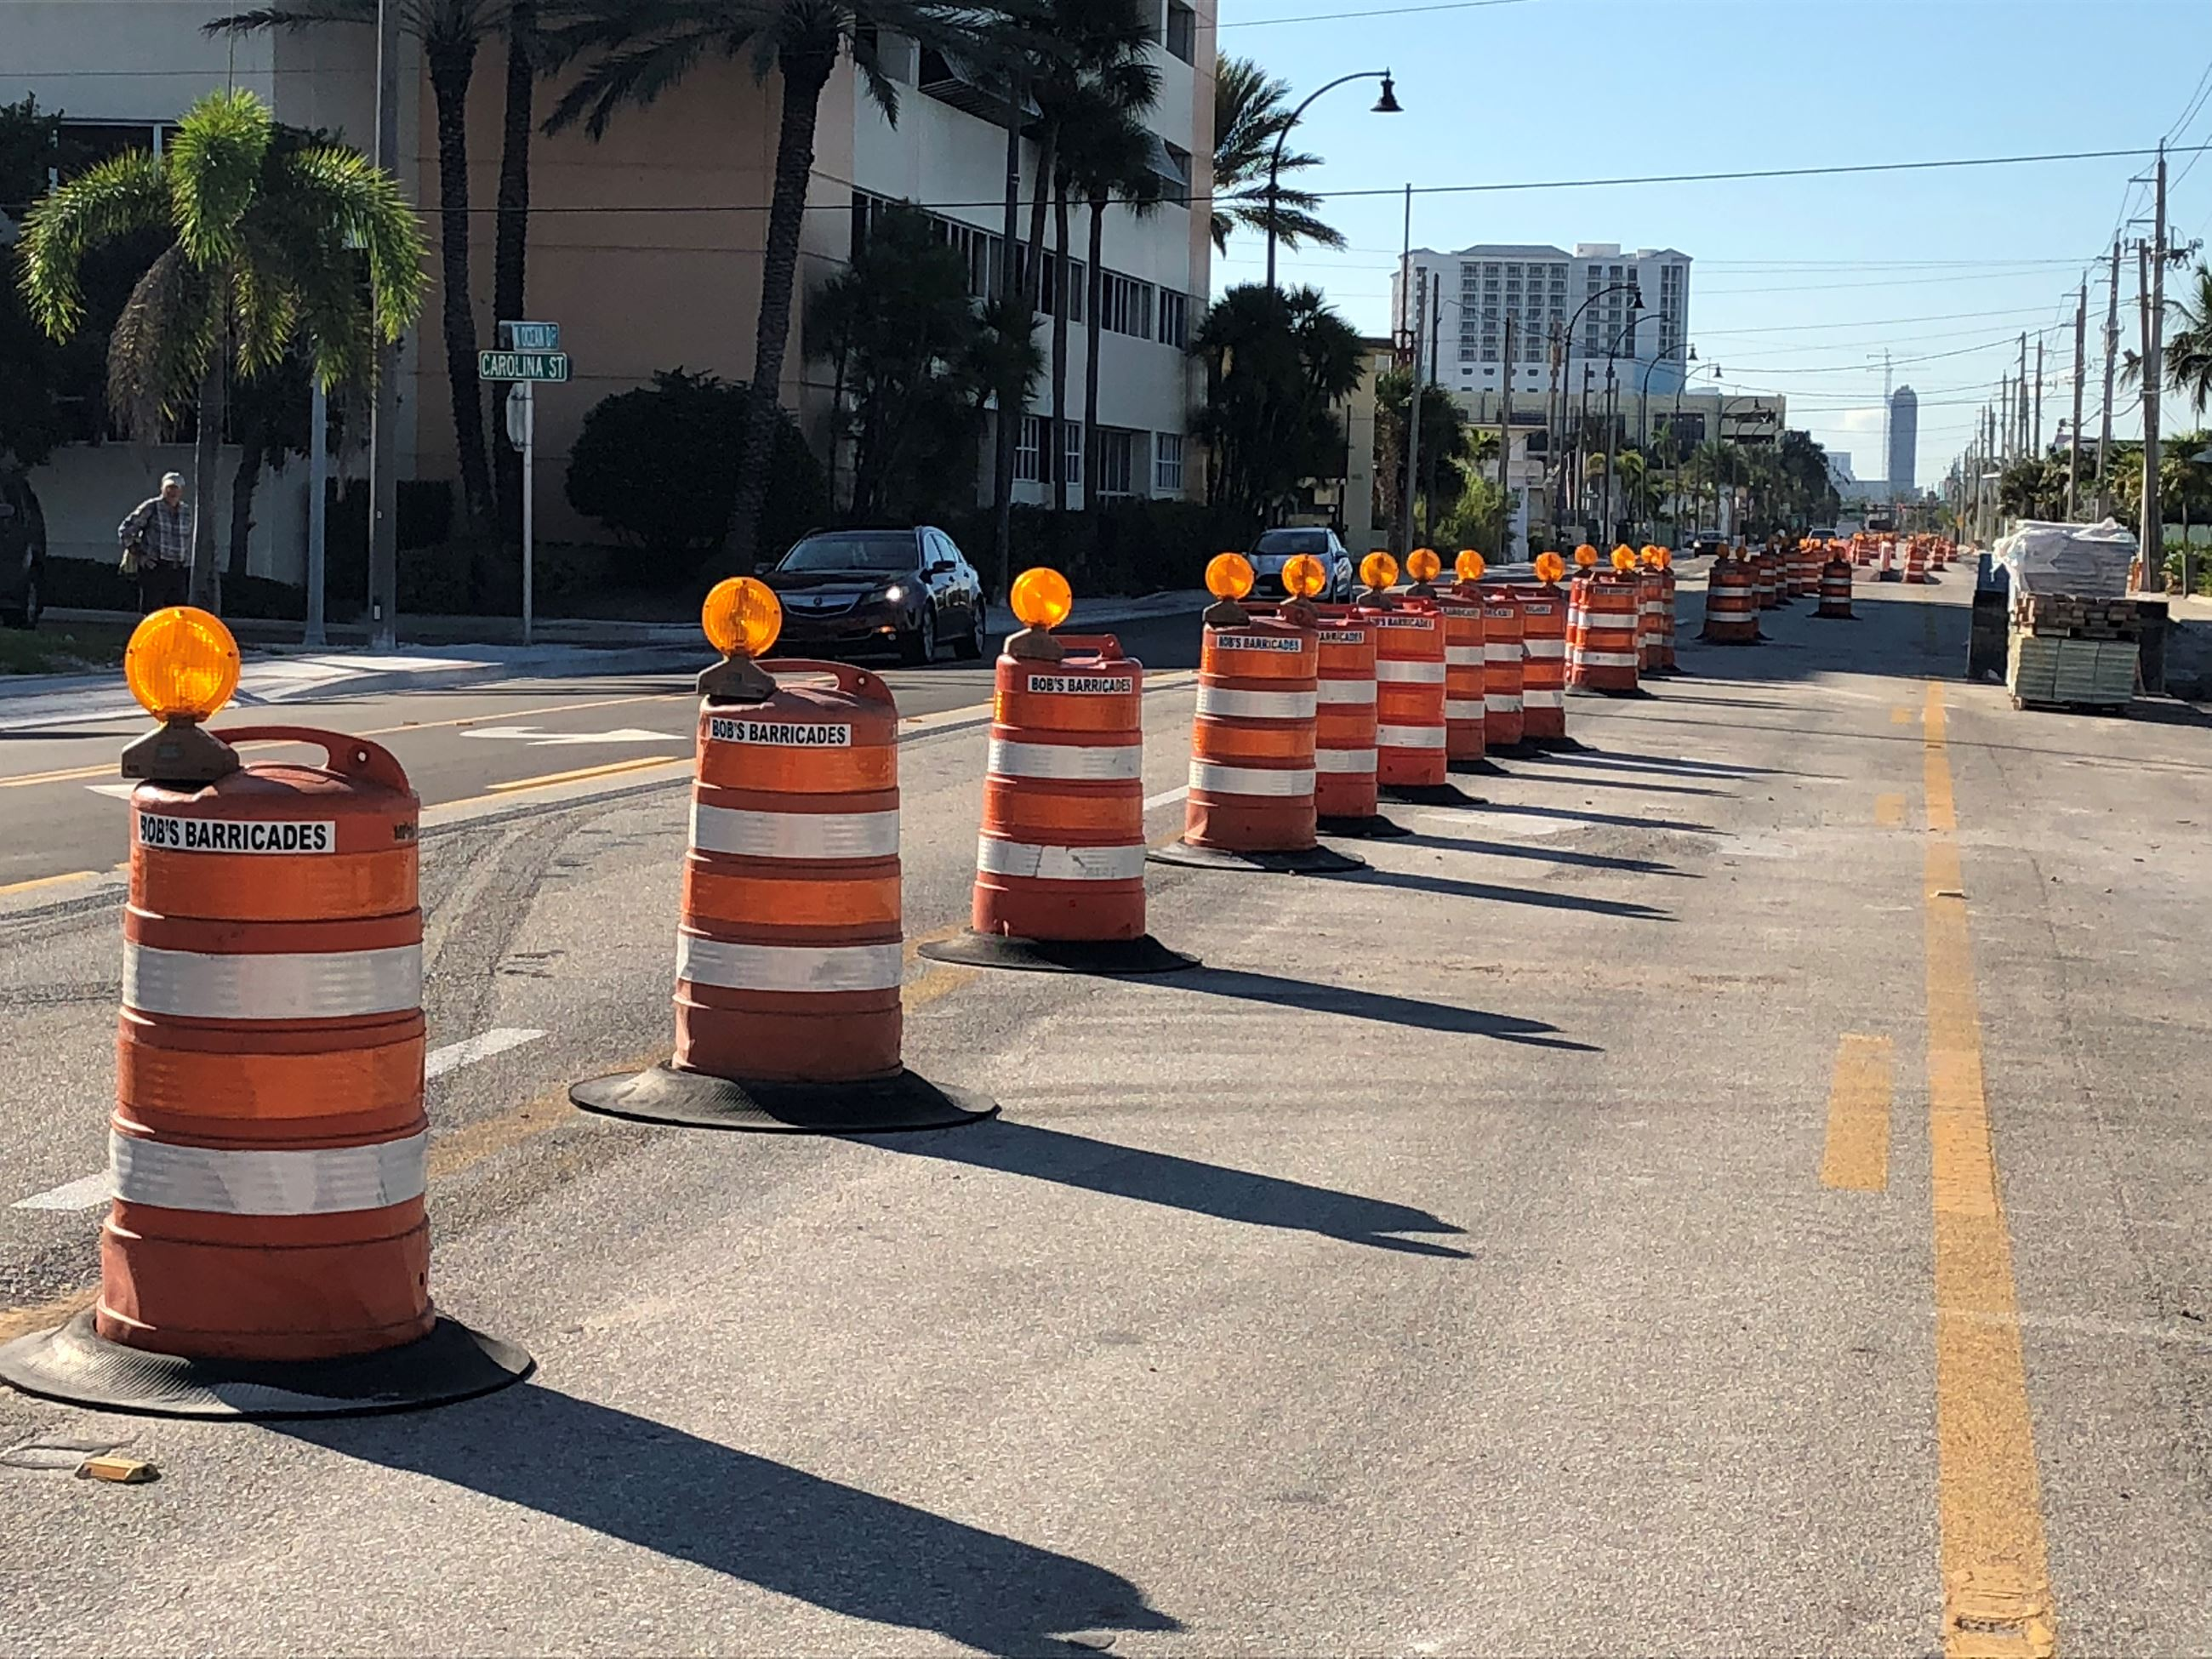 A1A Construction Project - November 19, 2018 Update